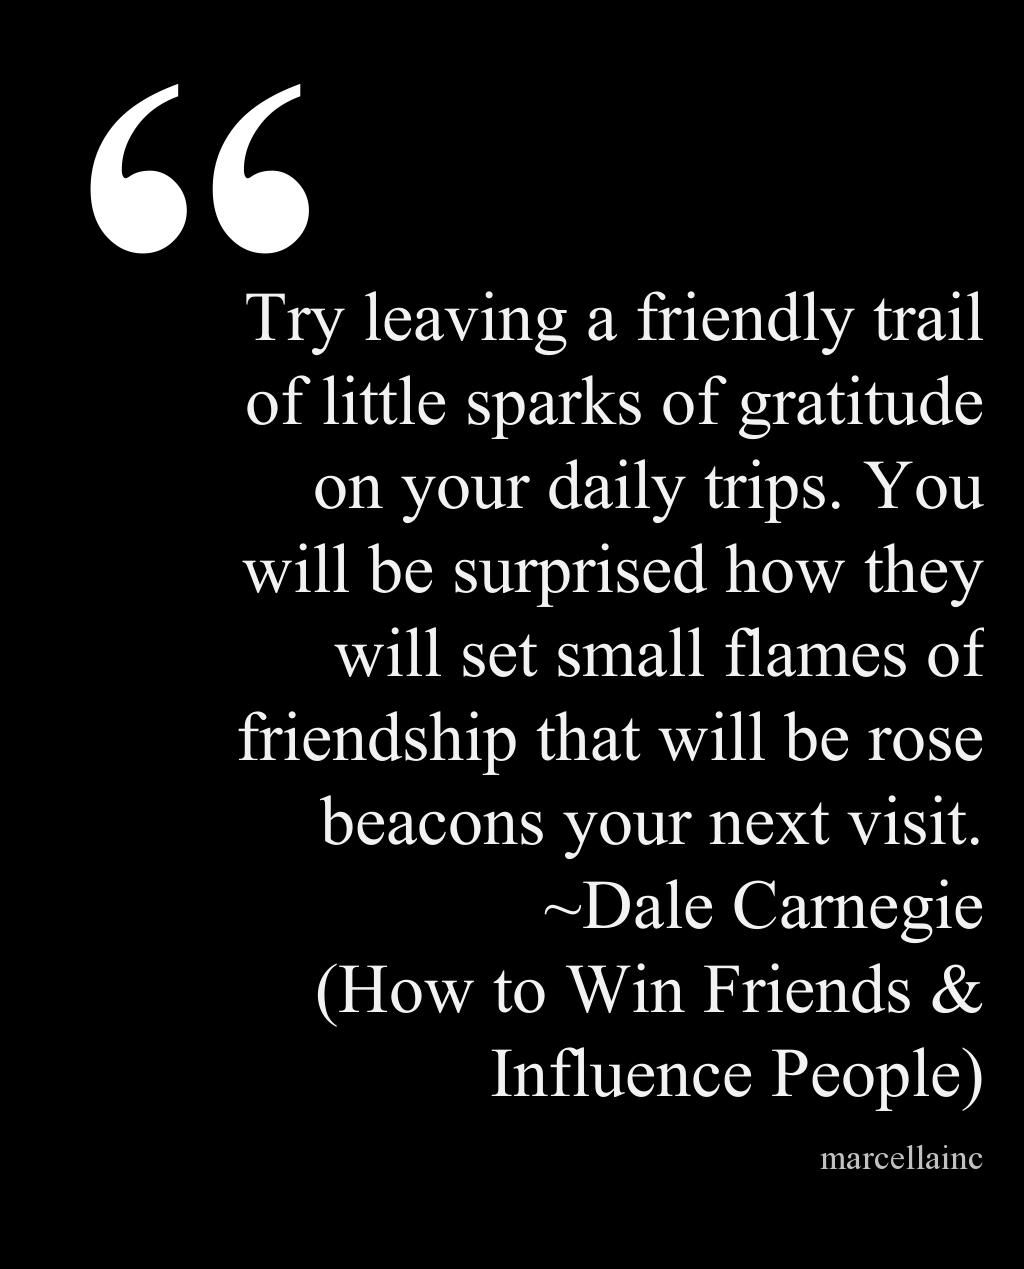 Show appreciation. Don't criticize. Dale Carnegie How to Win